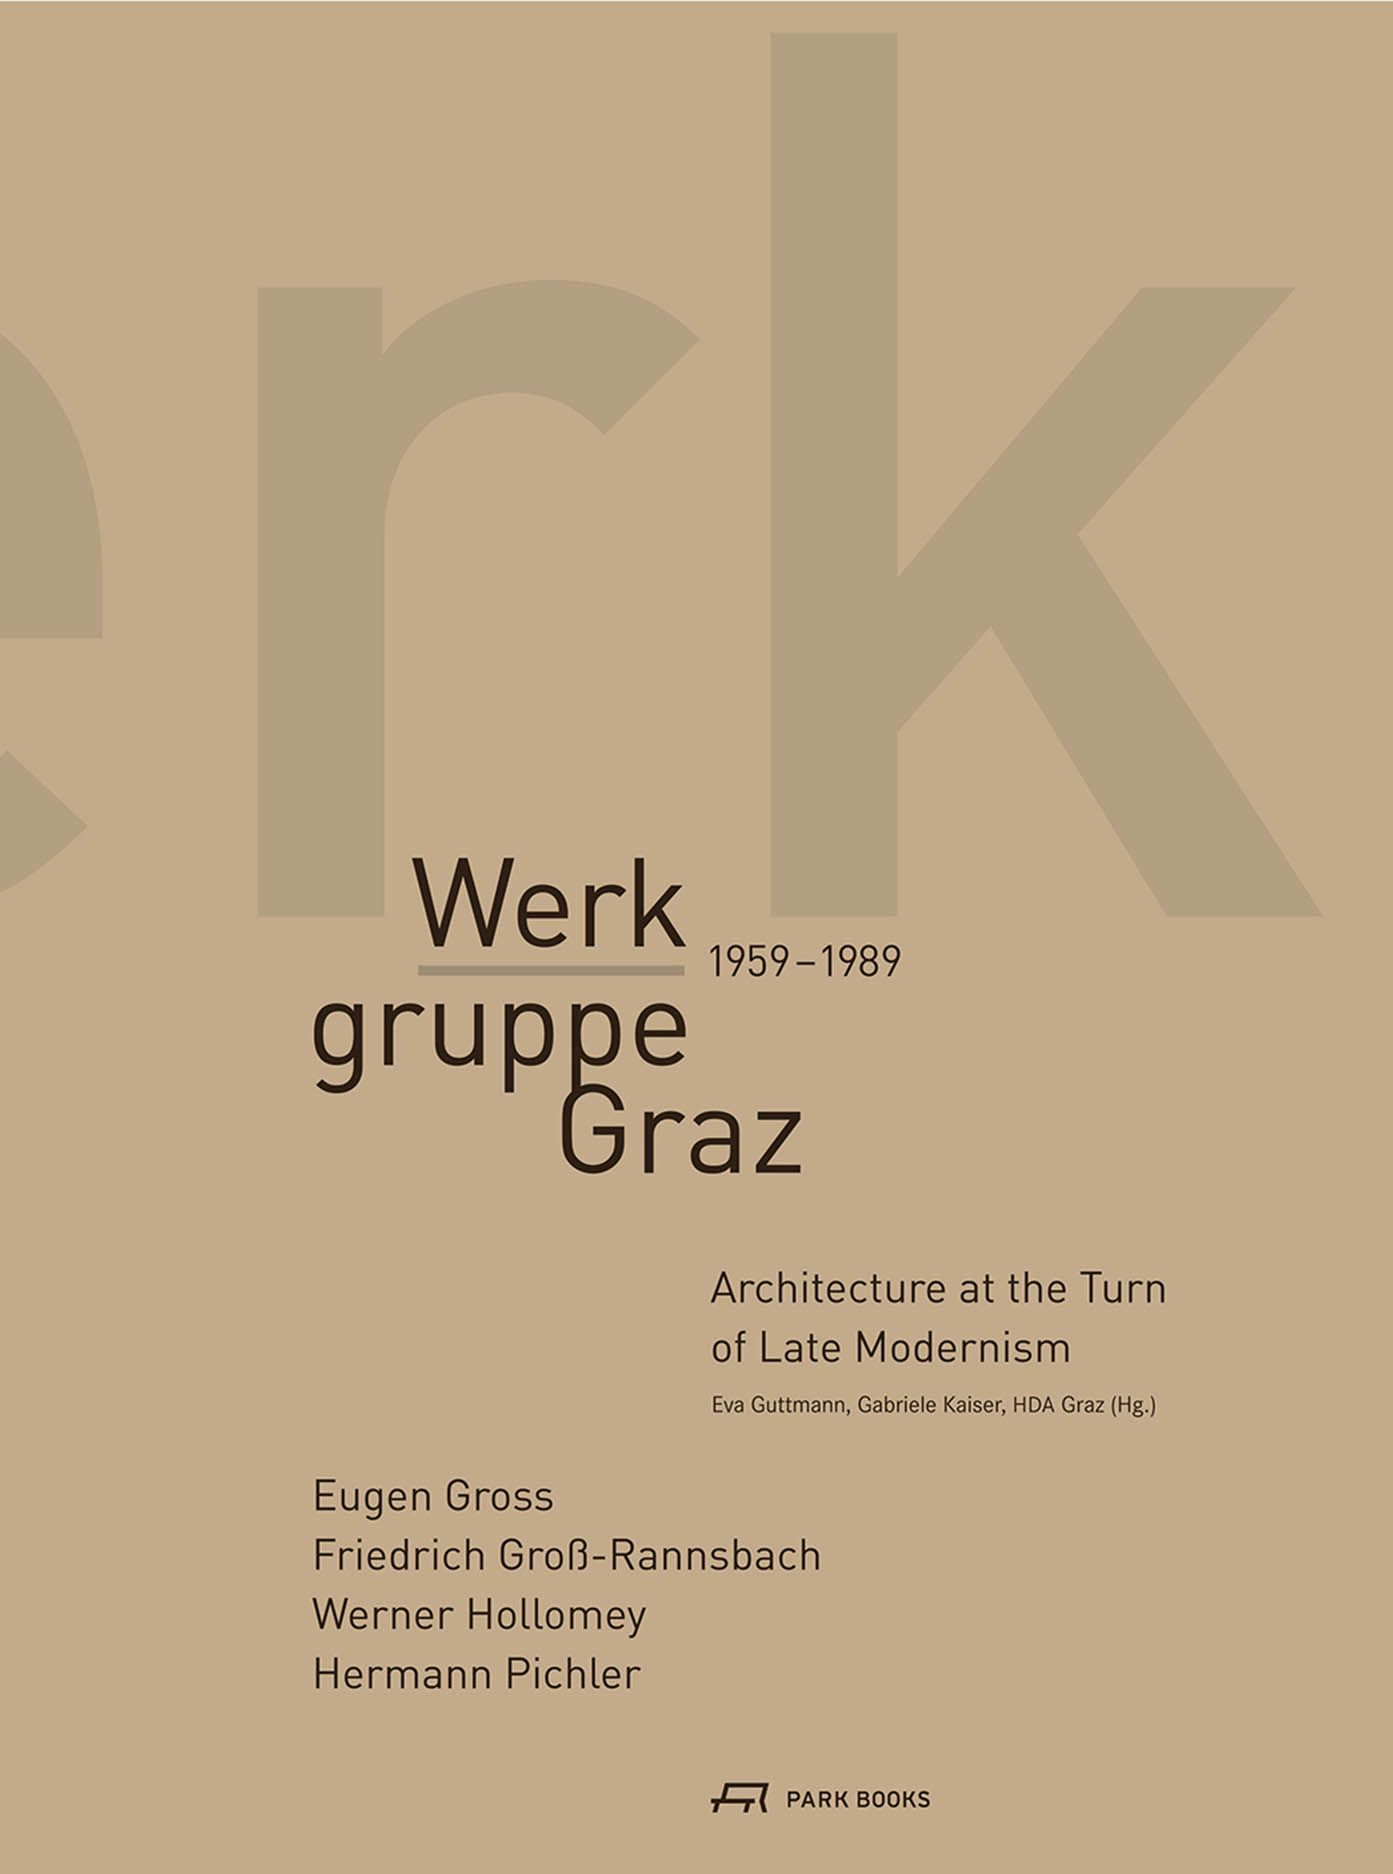 Werkgruppe Graz 1959-1989: Architecture at the Turn of Late Modernism